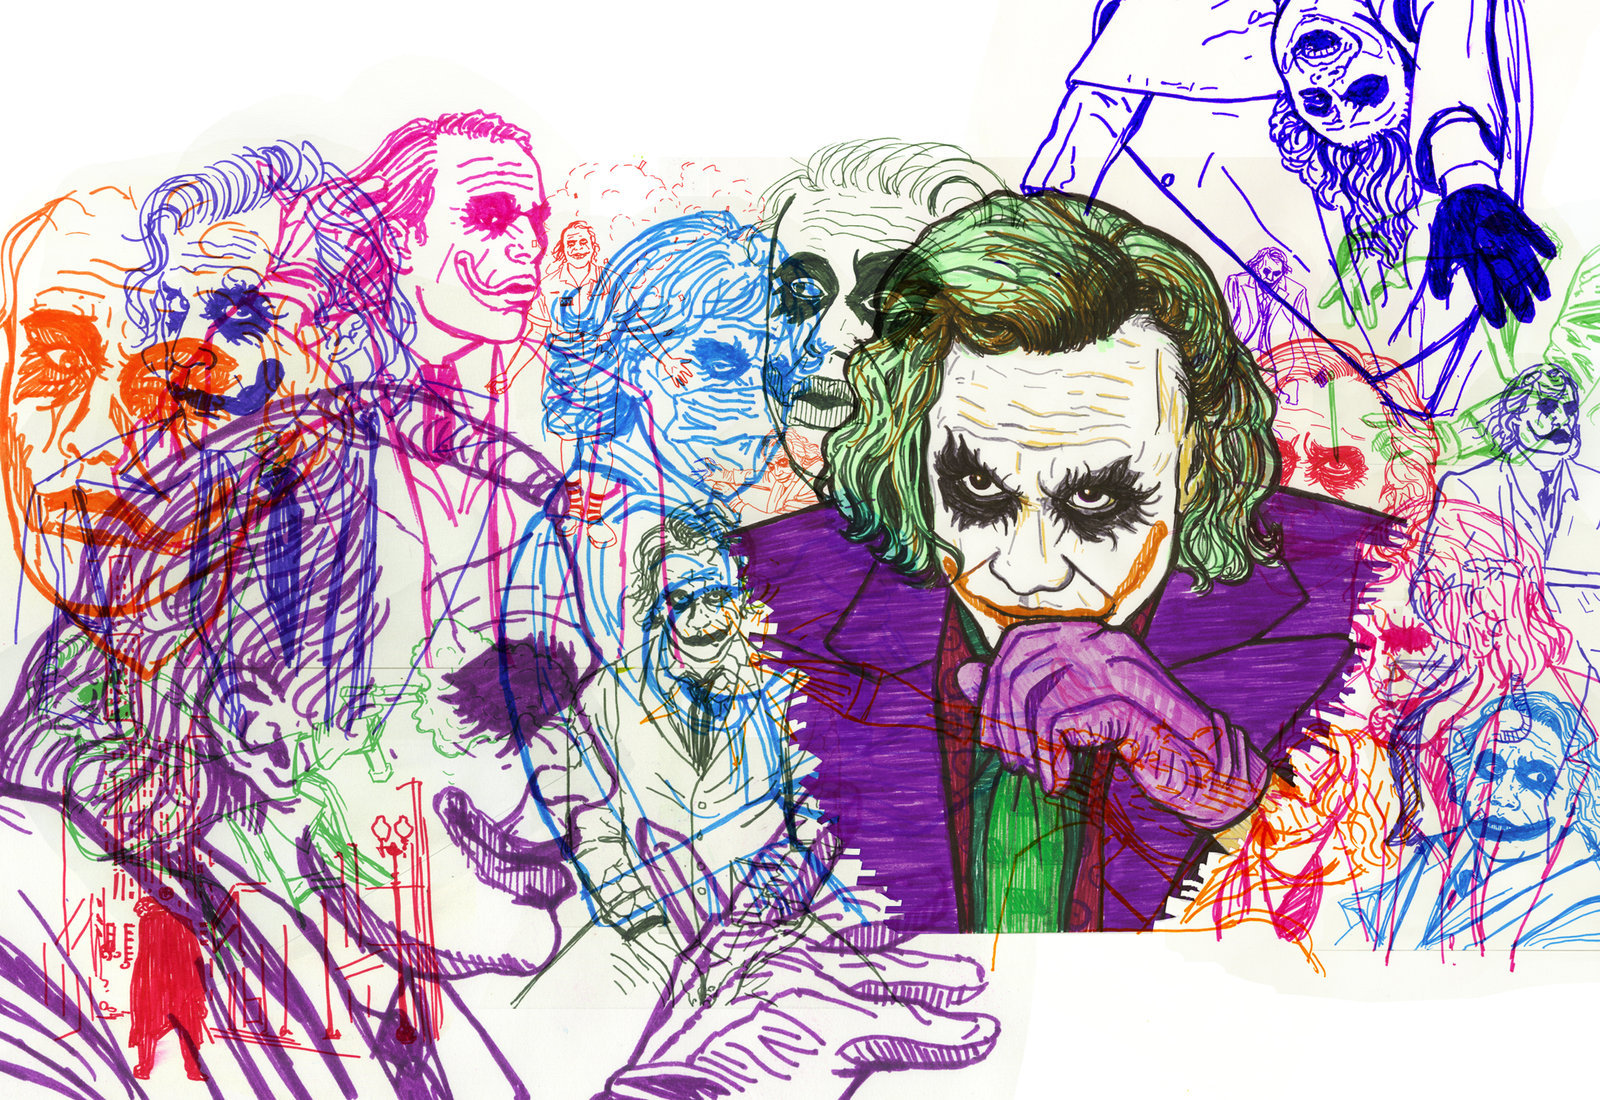 GreenWhimsy||https://greenwhimsy.deviantart.com/art/Heath-Ledger-as-the-Joker-126411216